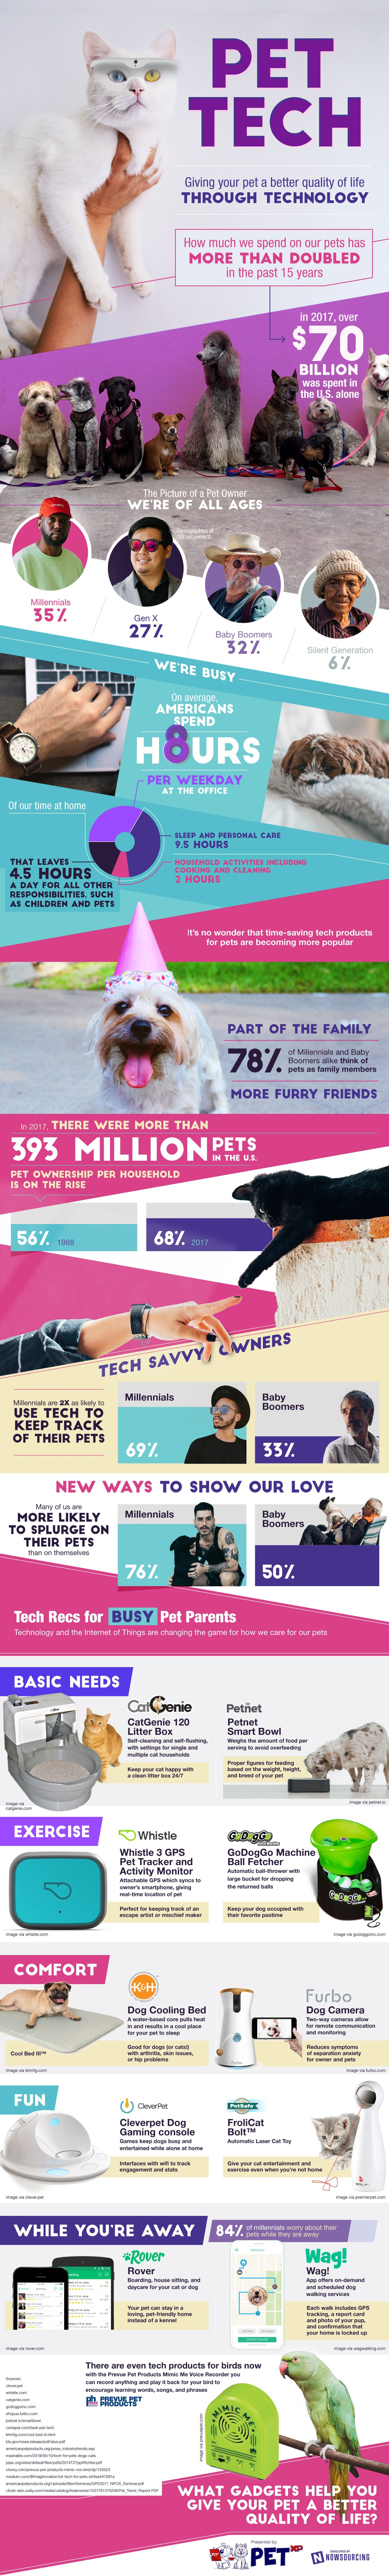 Pet Tech: Giving Your Pet A Better Quality Of Life Through Technology